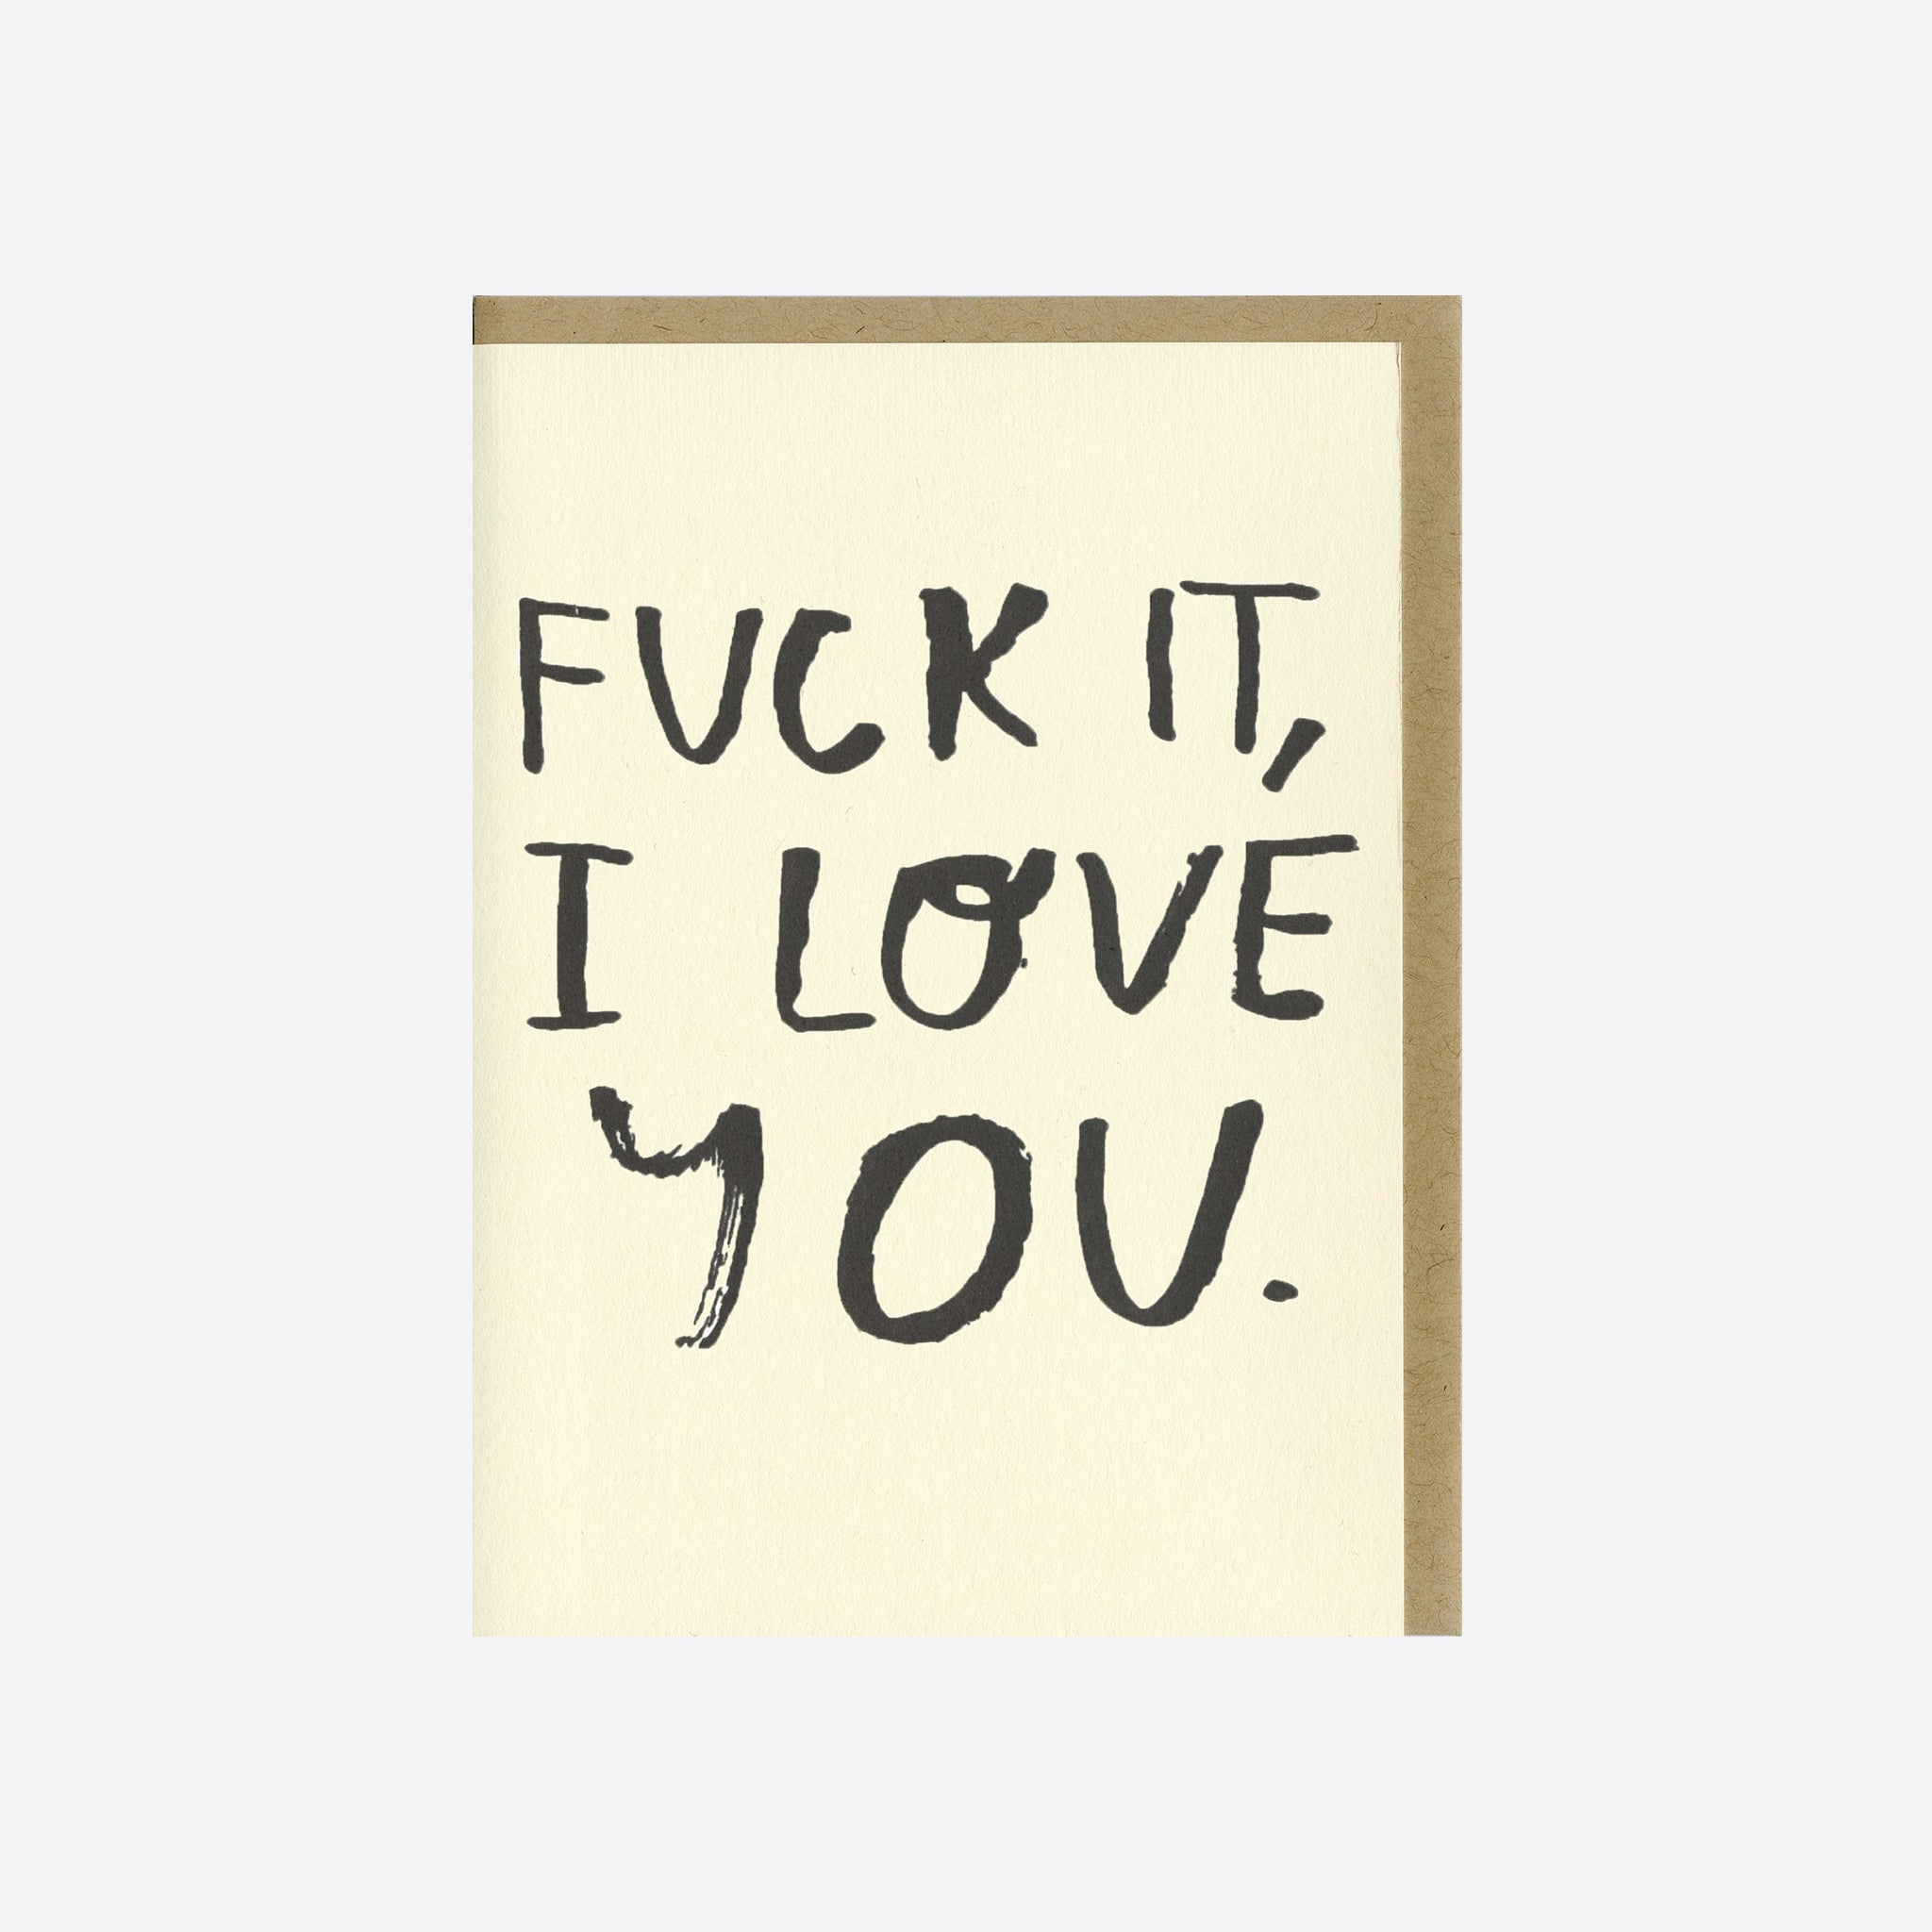 People I've Loved Fuck It Card